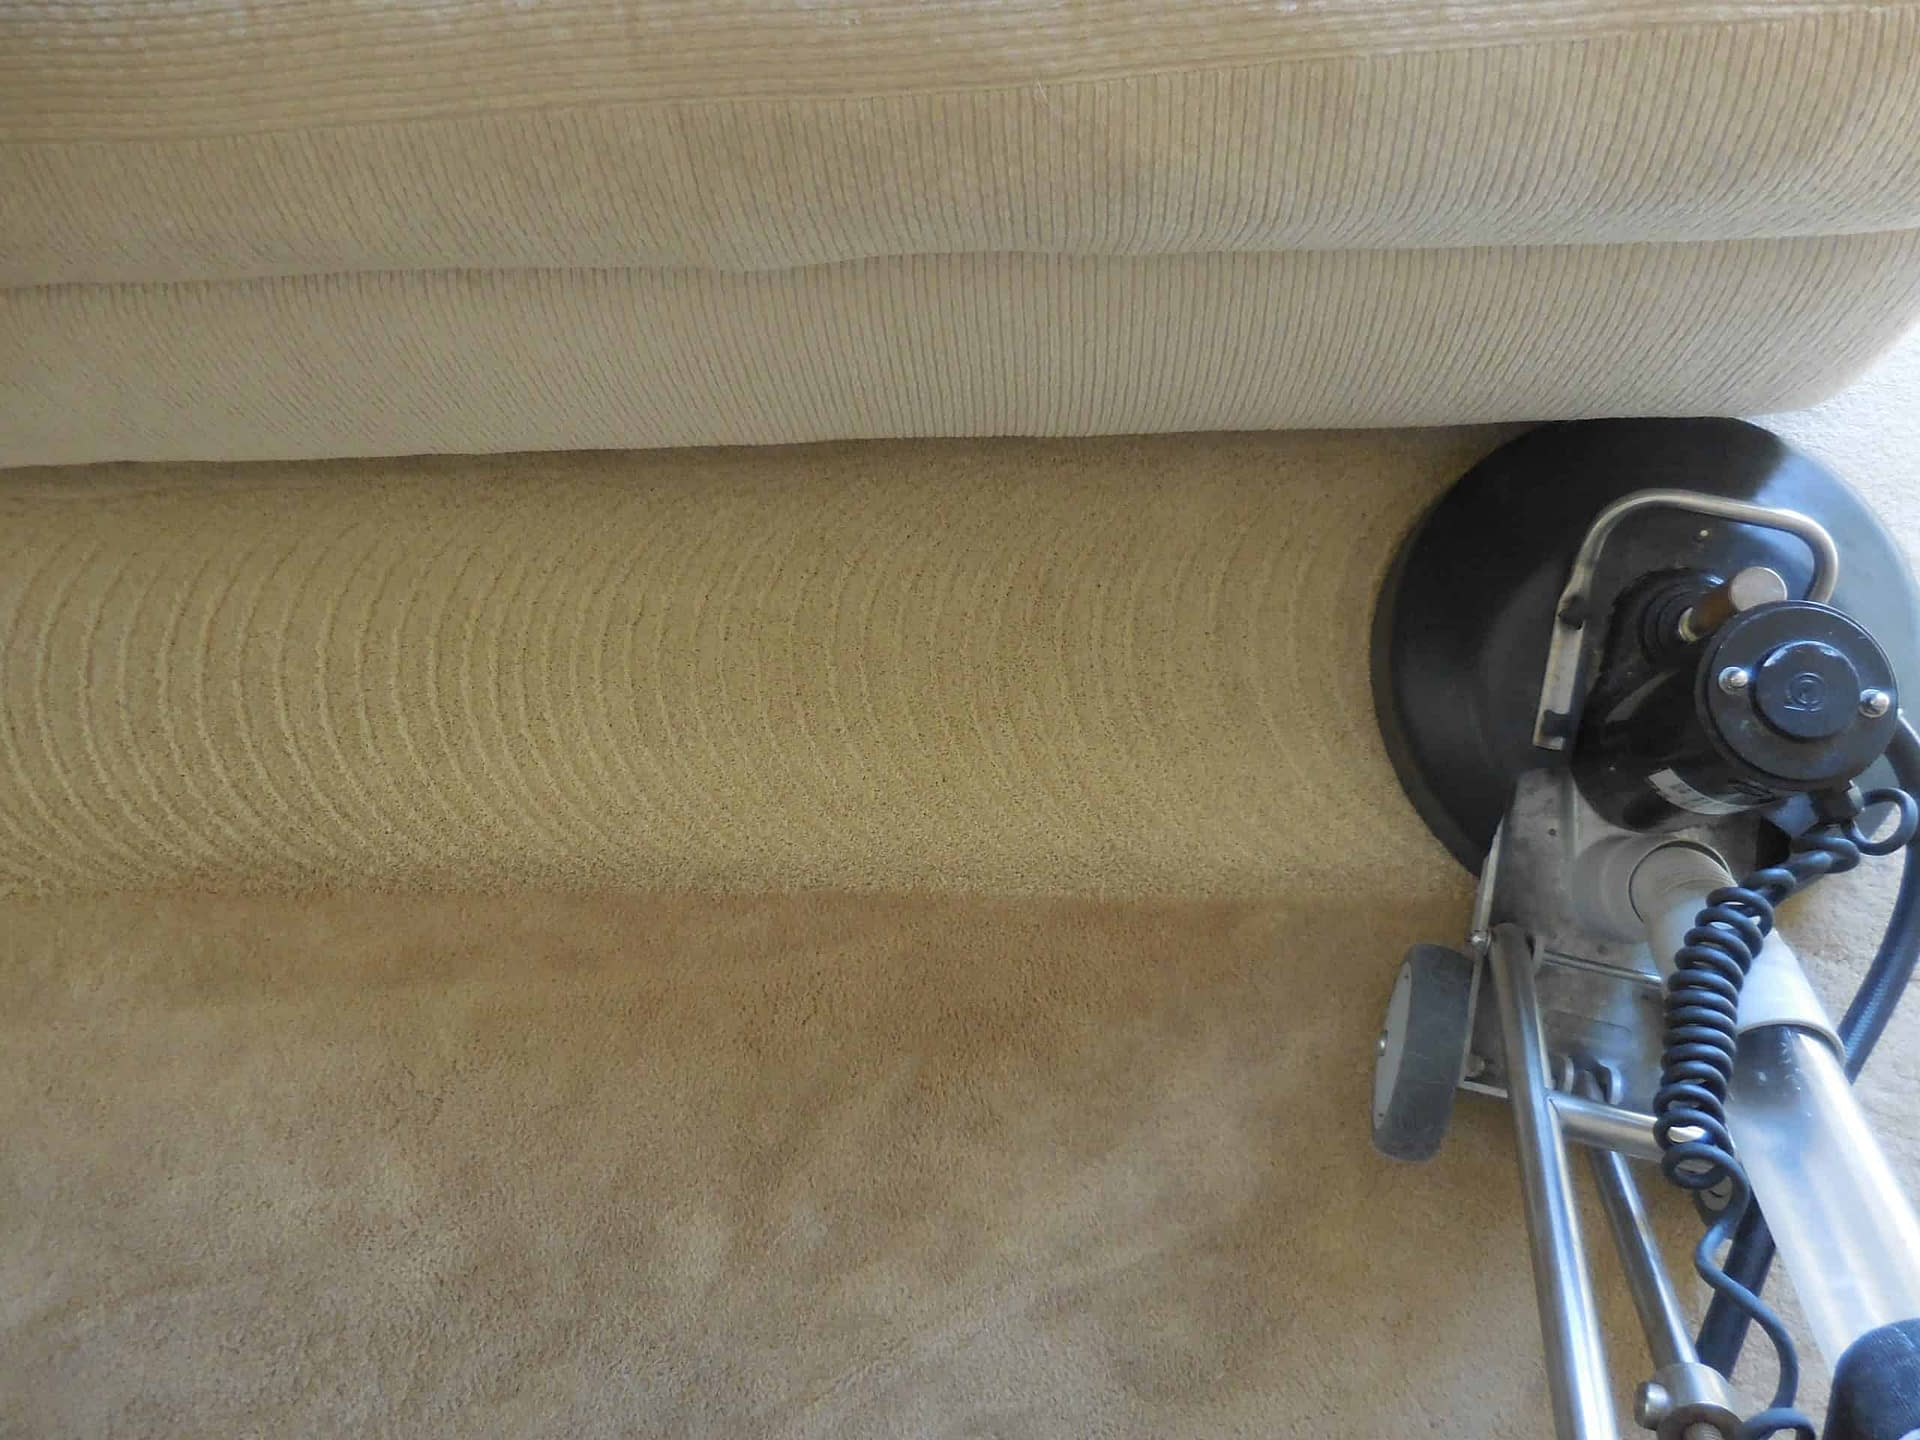 Bedroom carpet cleaning Doylestown, PA